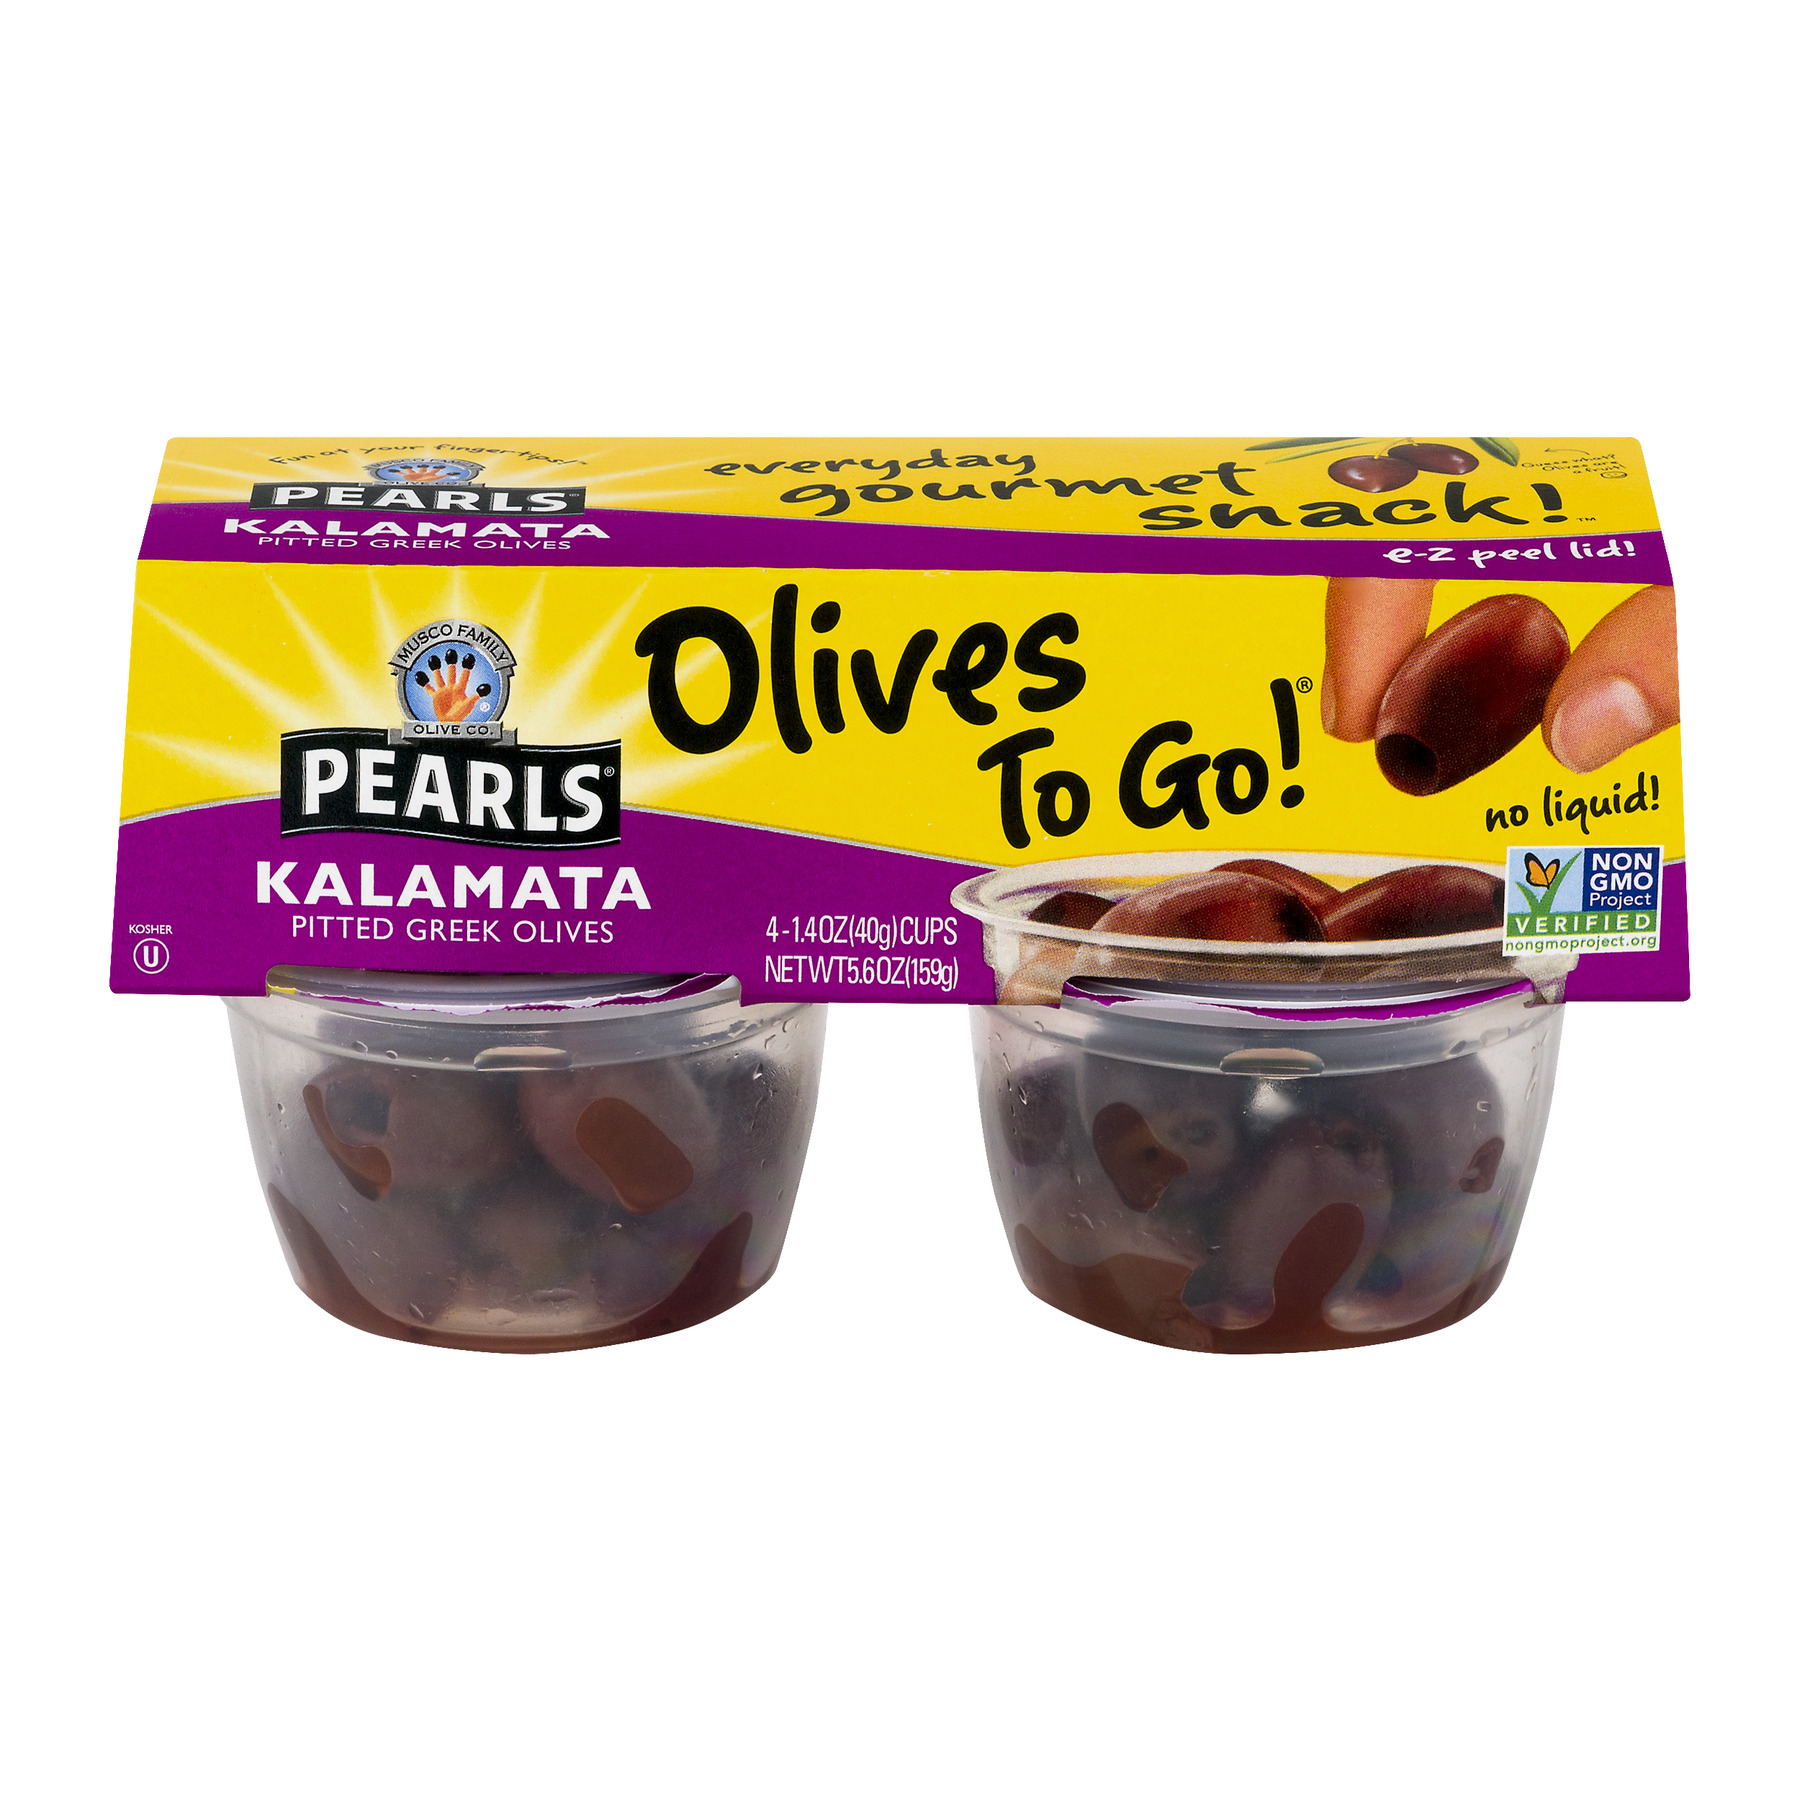 (2 Pack) Musco Family Olive Co. Pearls Kalamata Pitted Greek Olives - 4 PK, 1.4 OZ